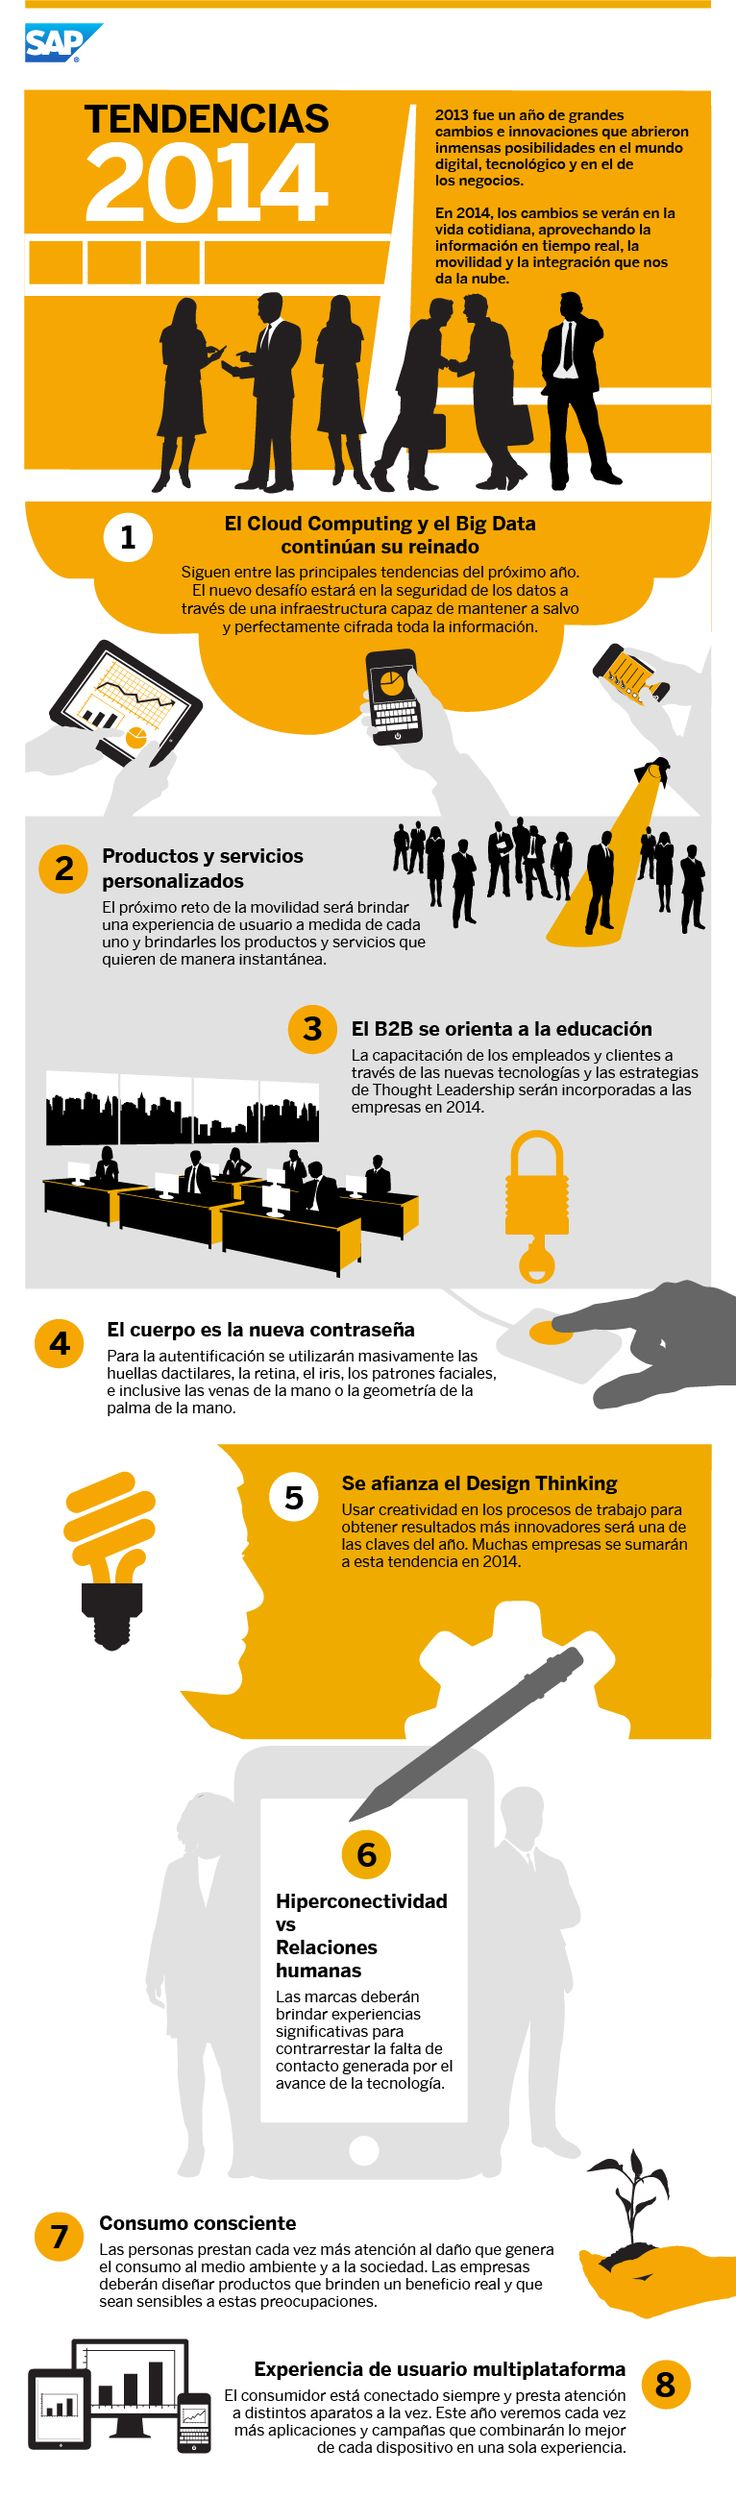 Tendencias digitales para 2014 #infografia #infographic